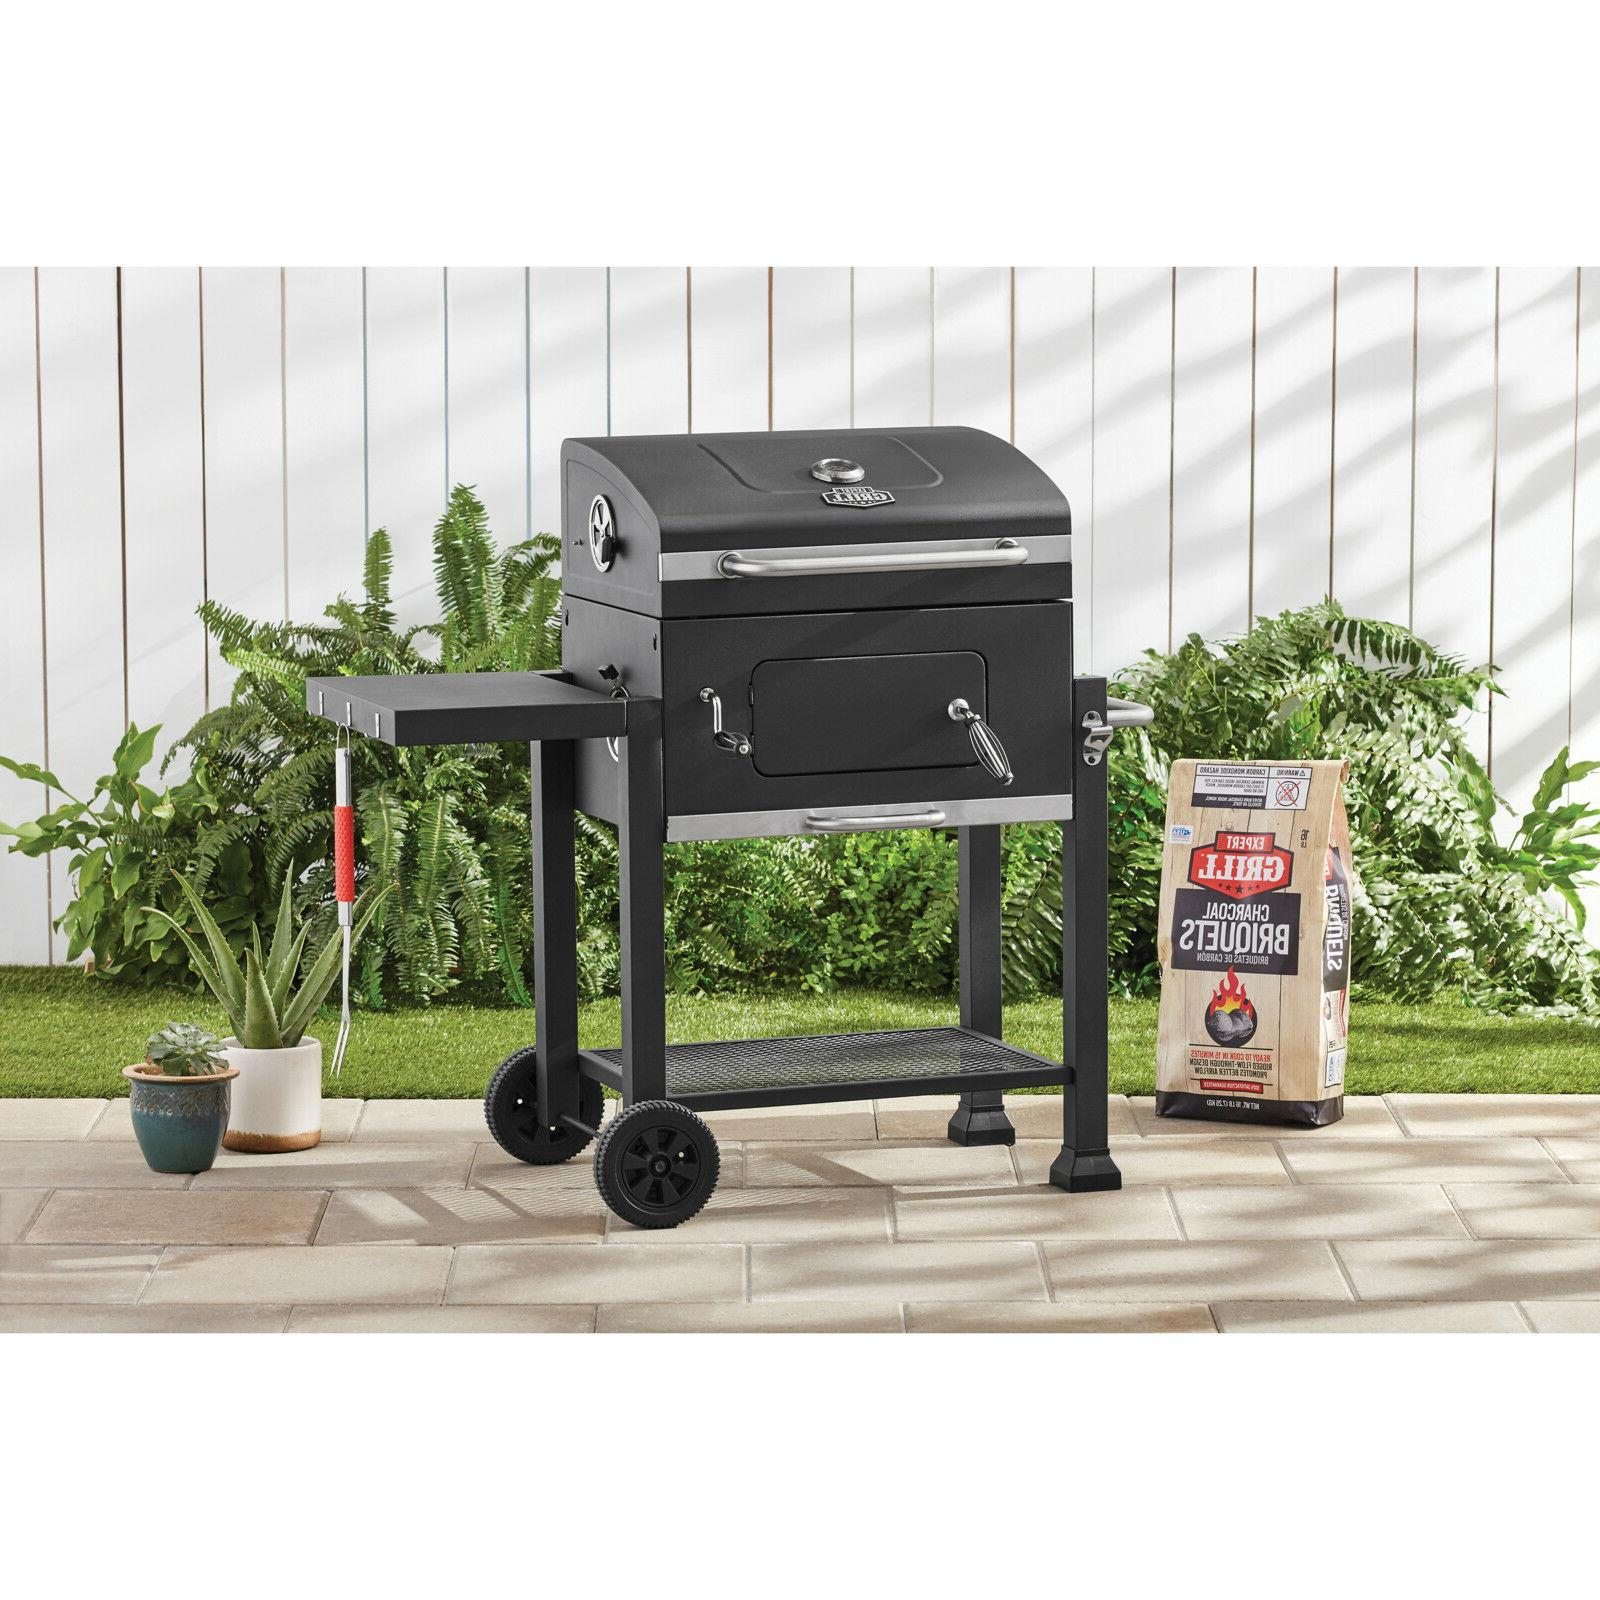 "CLEARANCE BRAND NEW Expert Grill Duty 24"" SHIPPING!!"